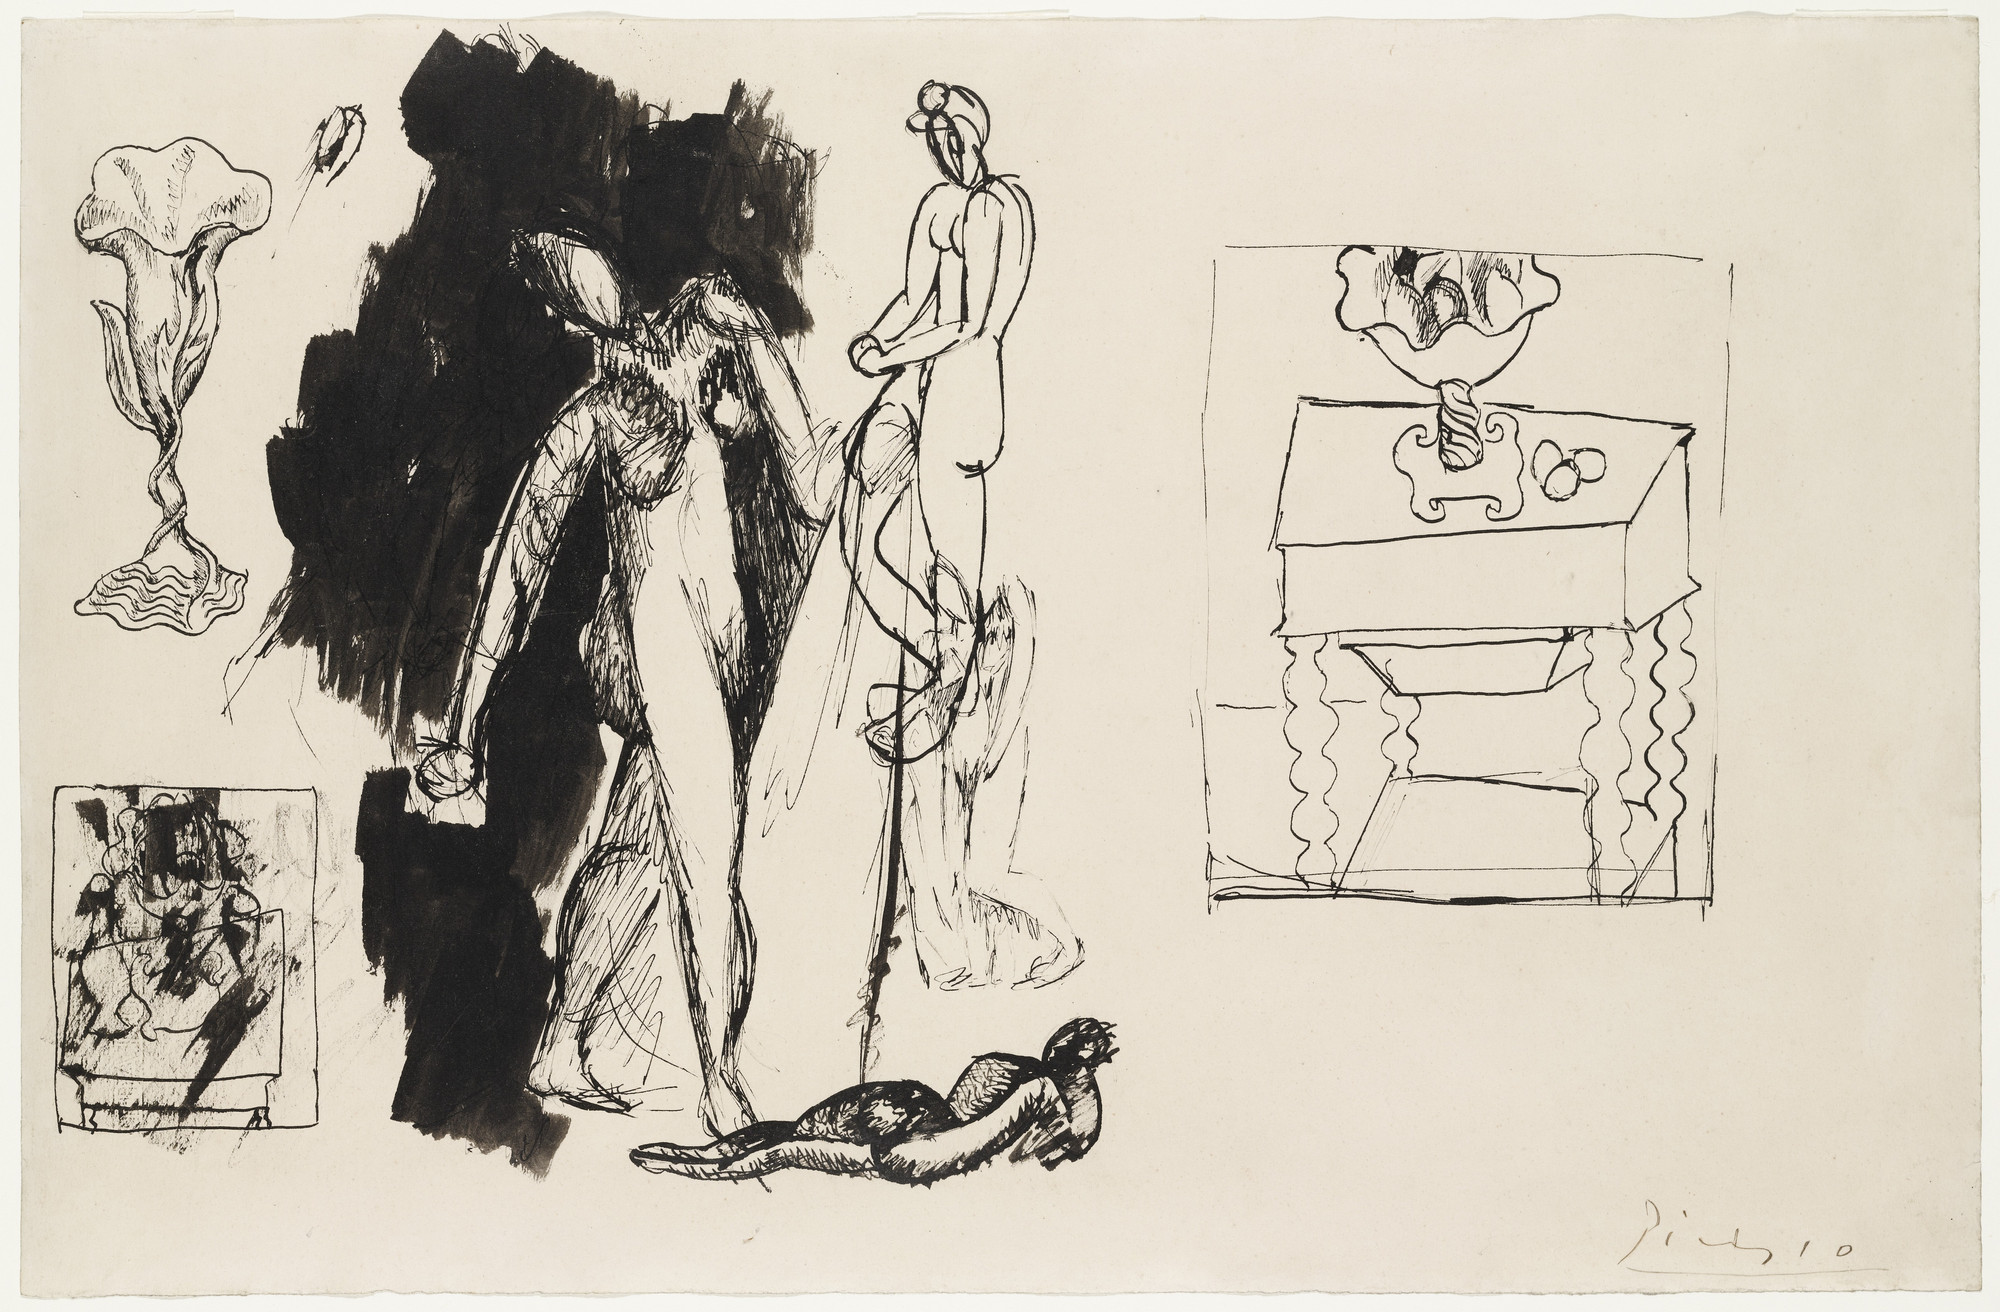 Pablo Picasso. Sheet of Studies. (1908)